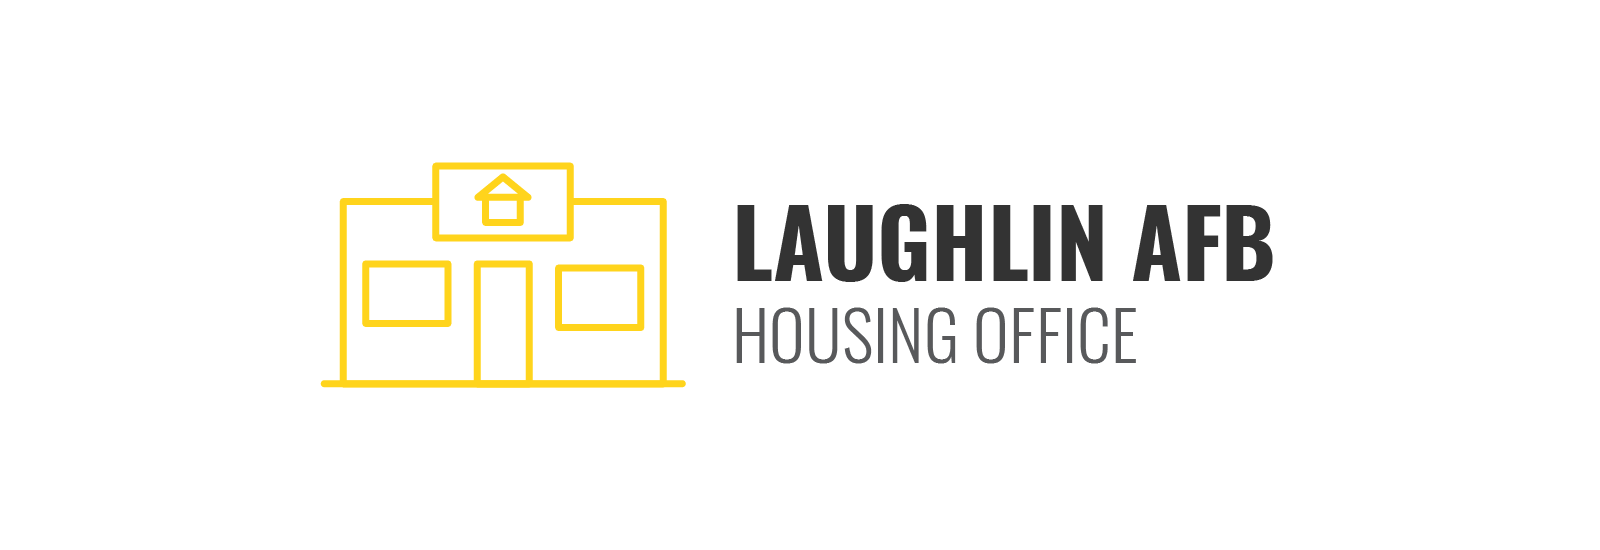 Laughlin AFB Housing Office